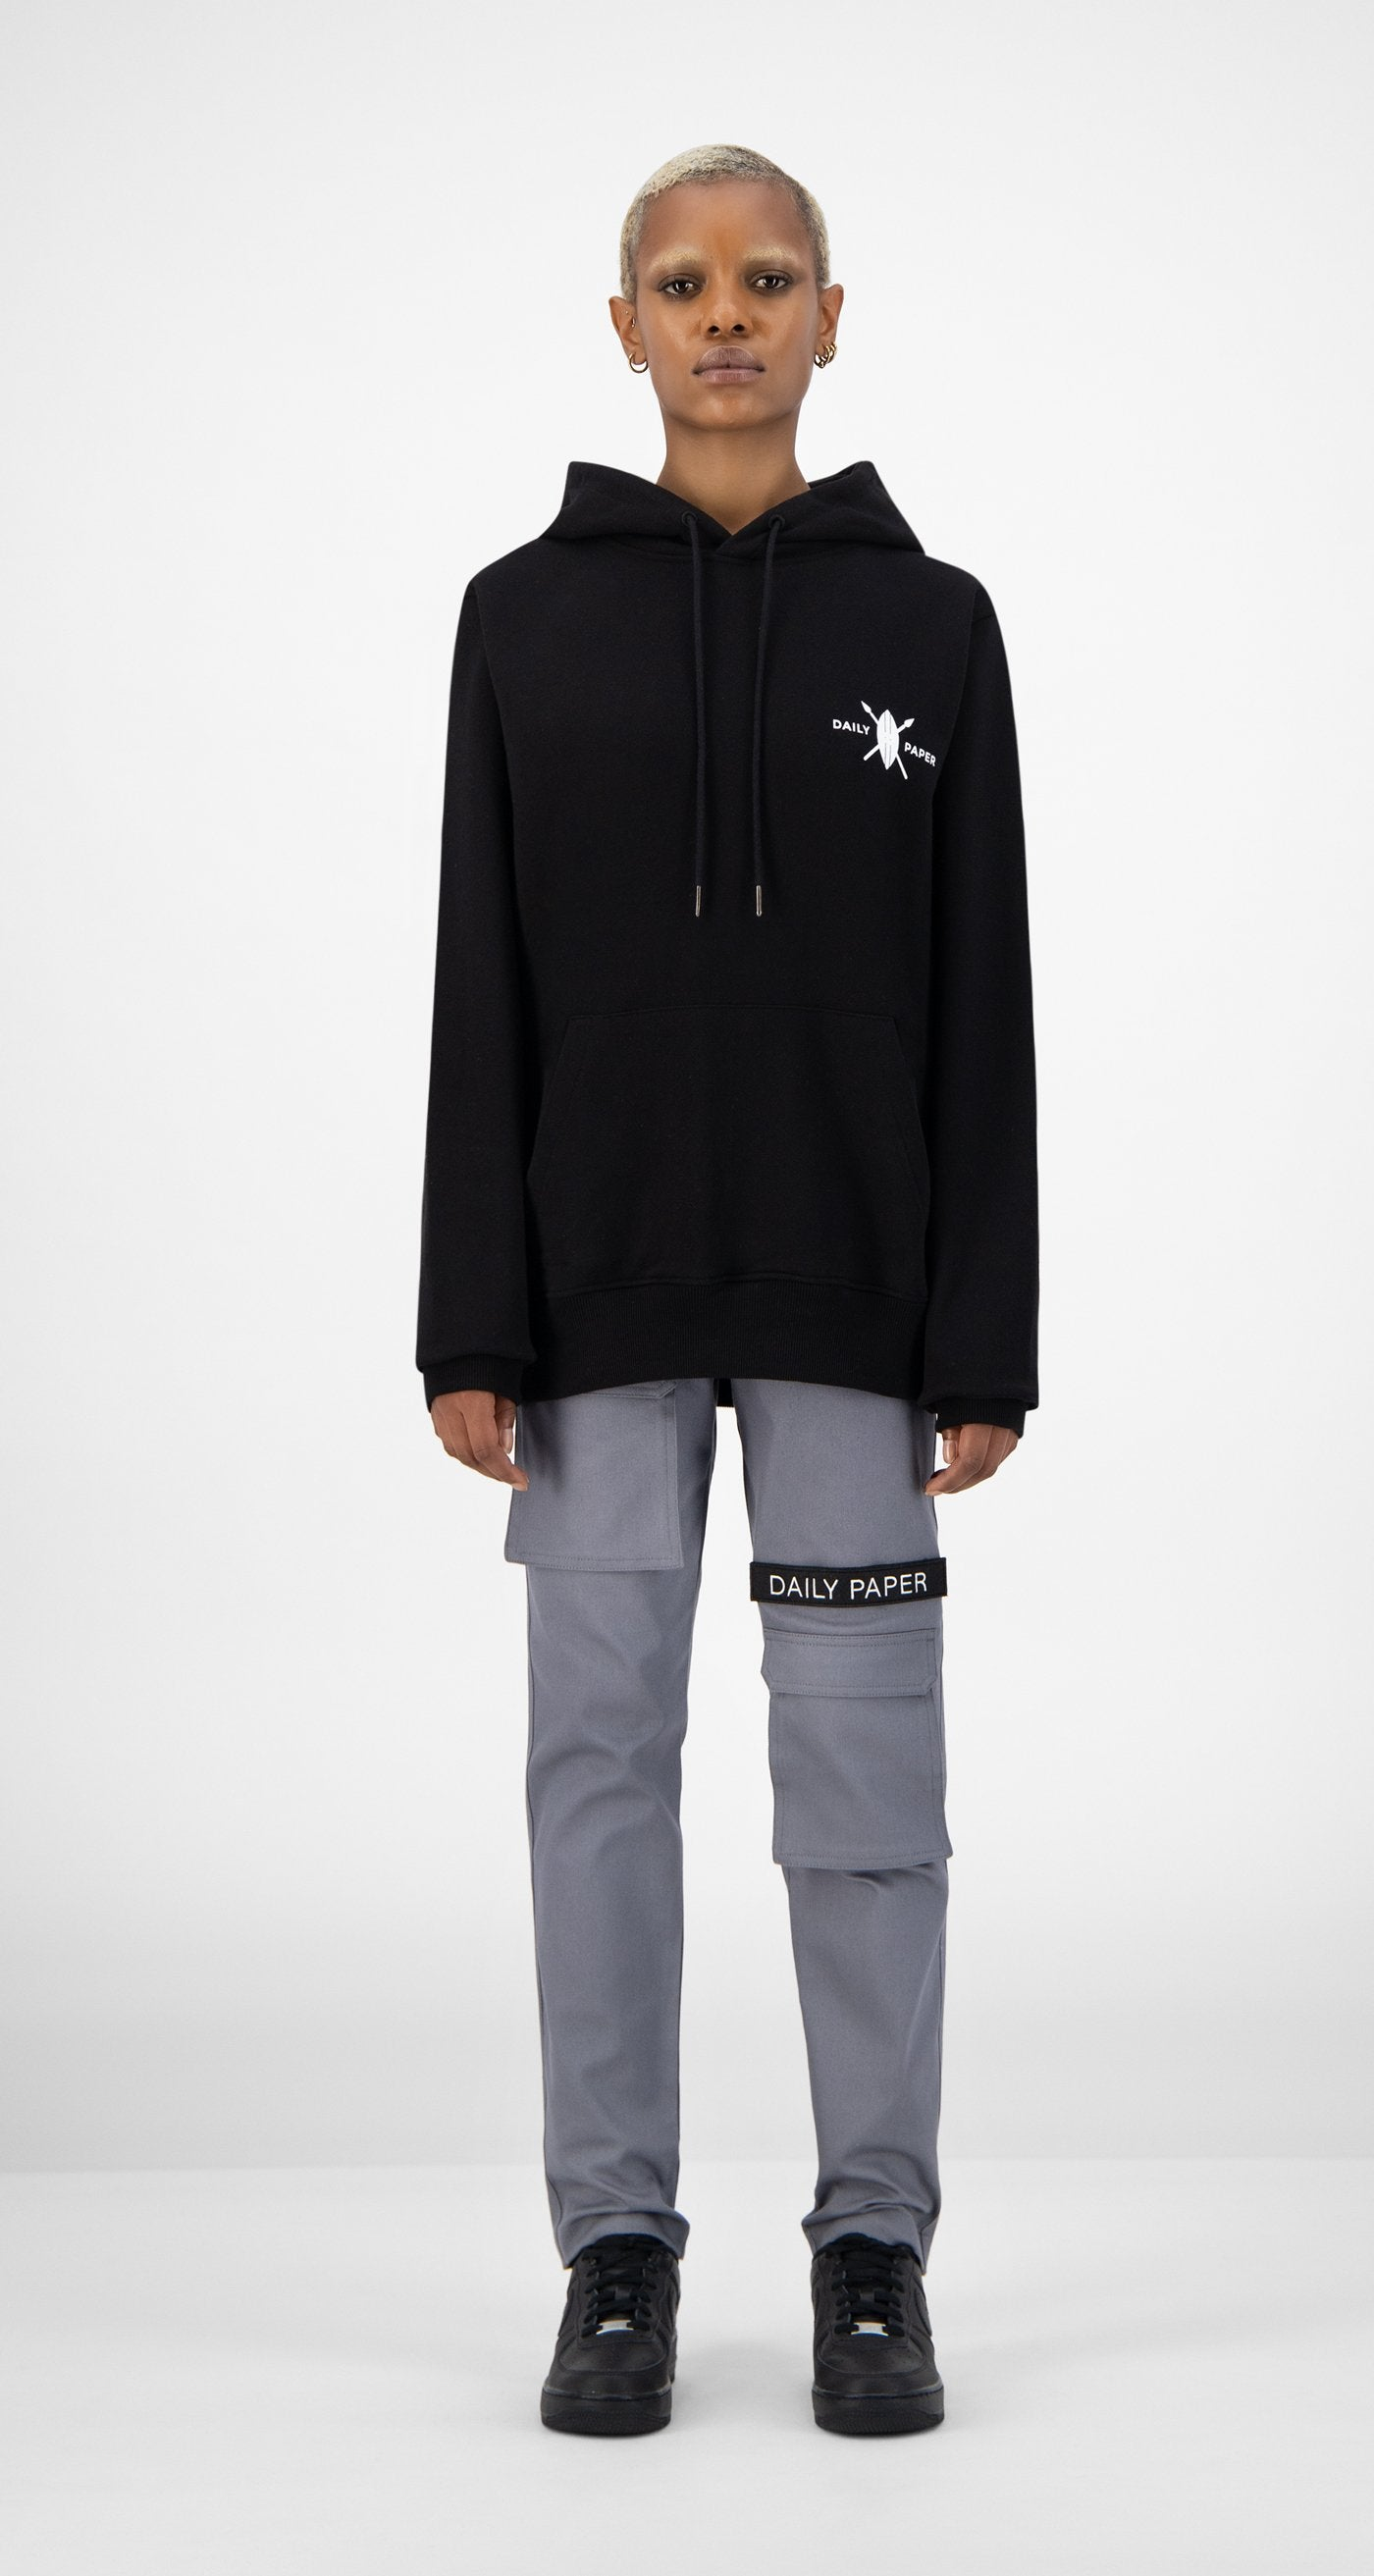 Daily Paper - Black NYC Store Hoody - Women Front